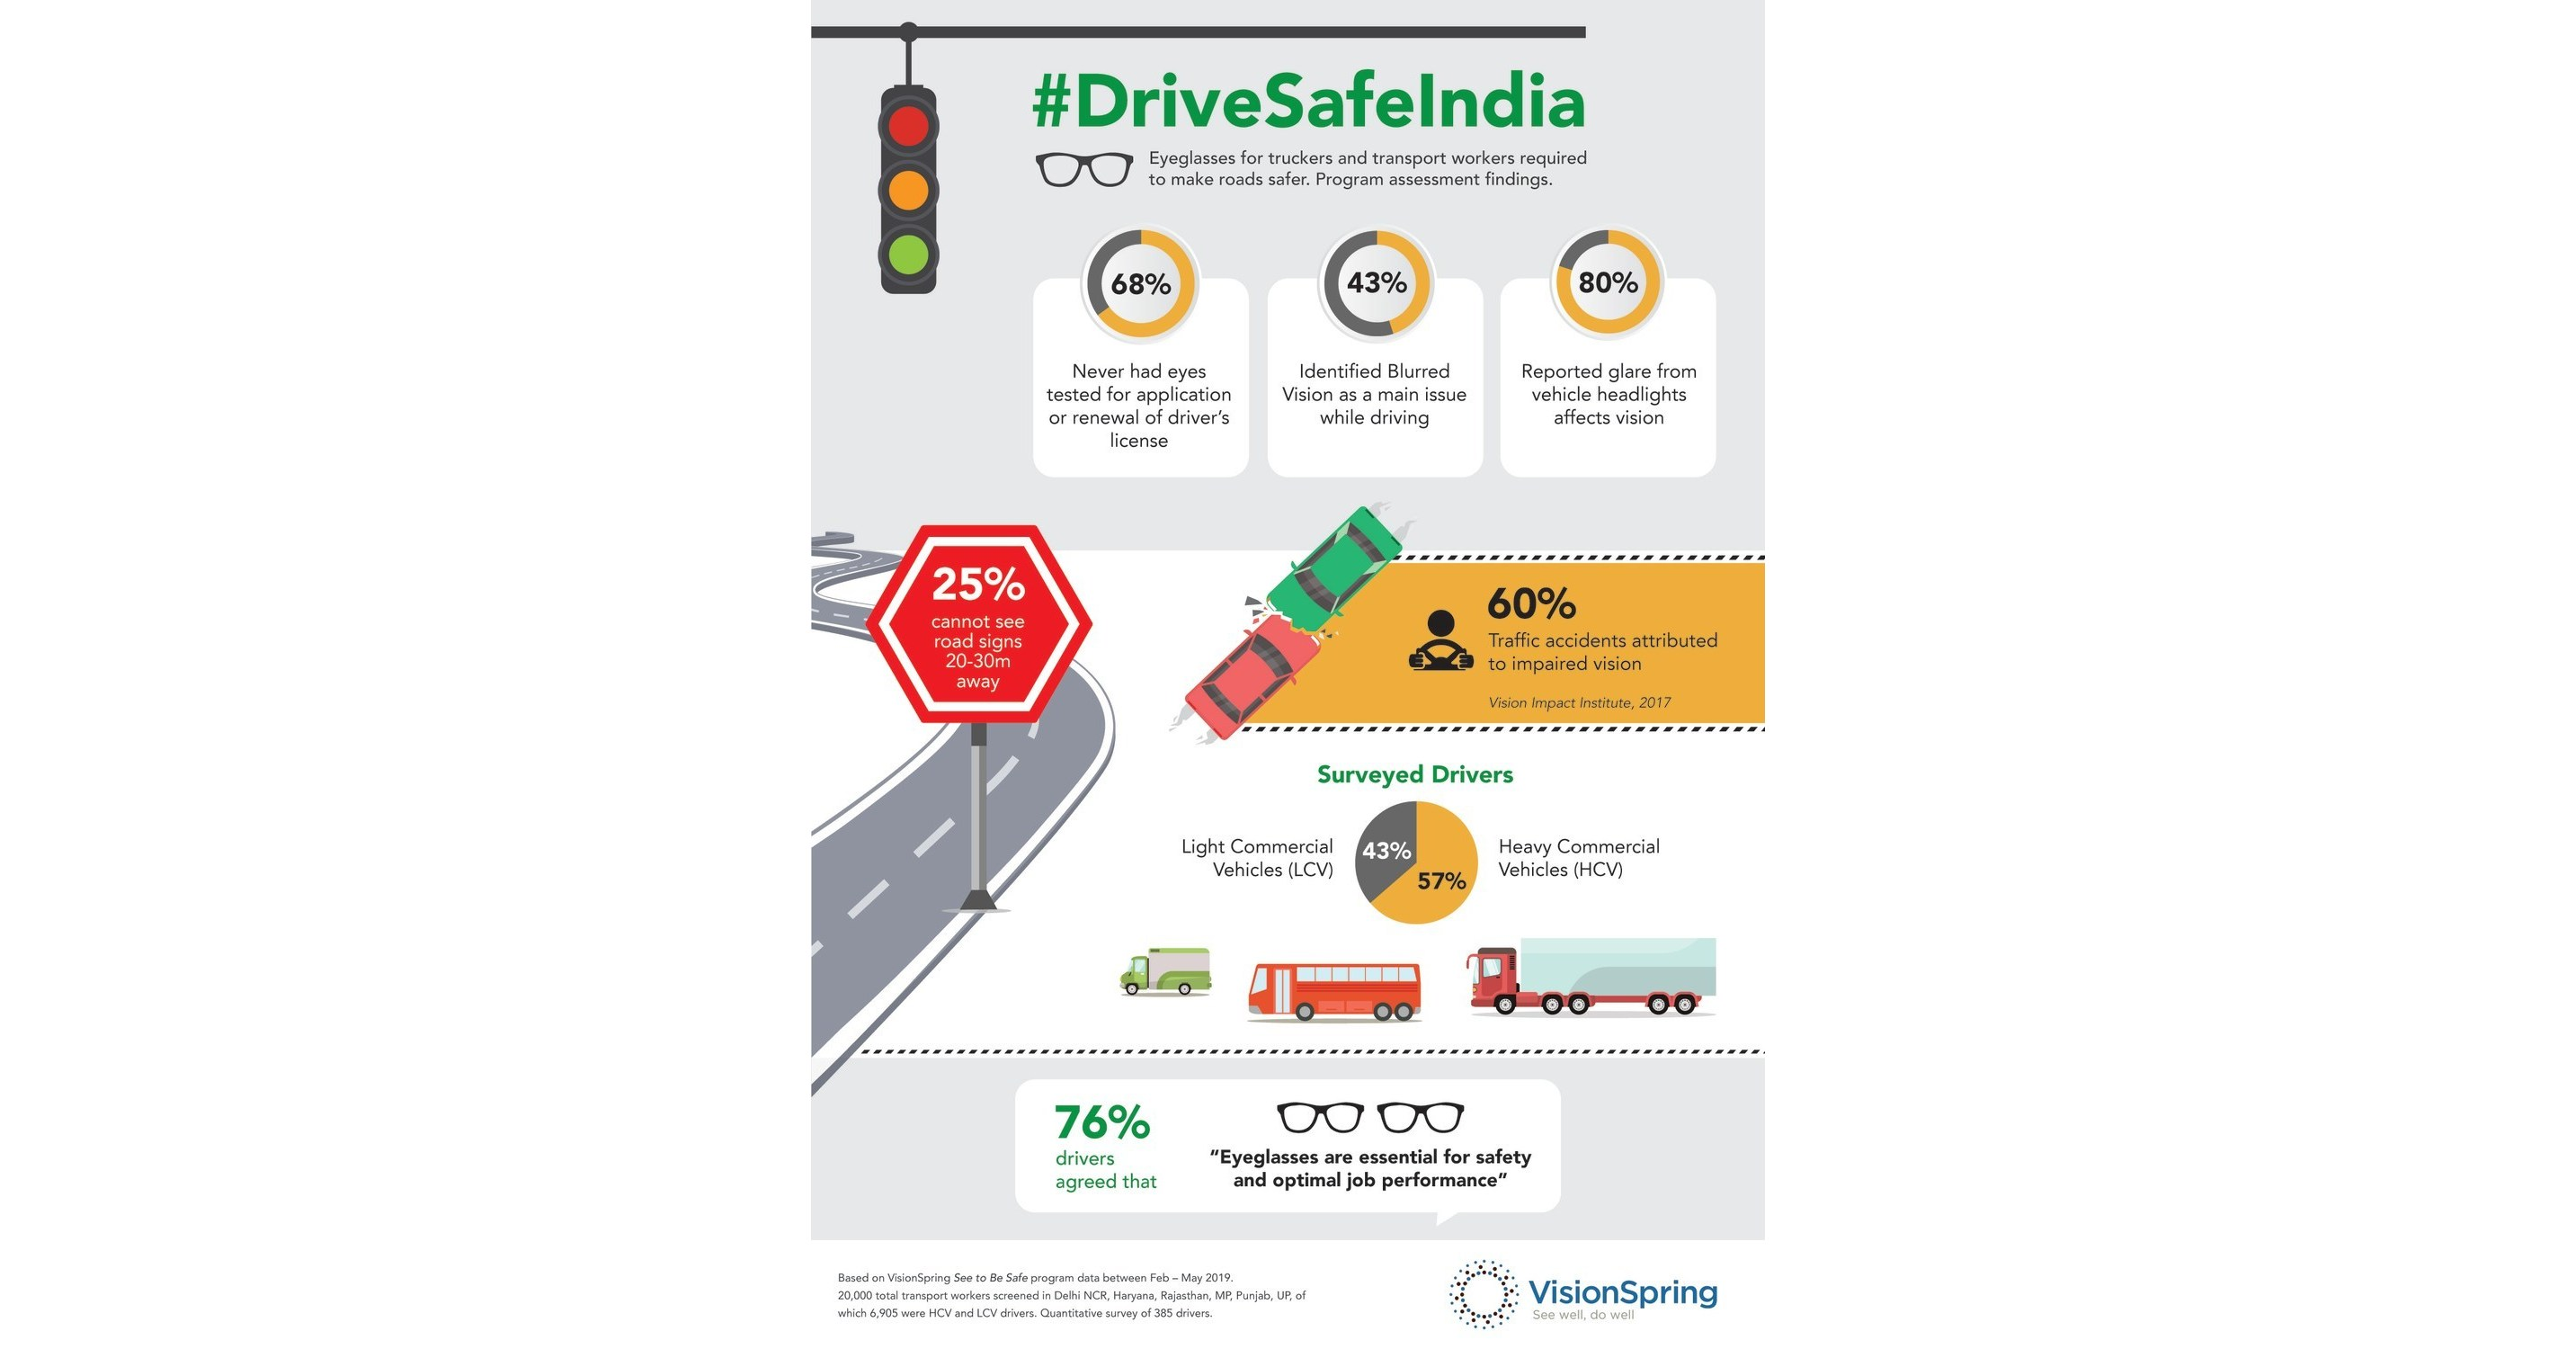 Shell India and VisionSpring to Make Driving Safer